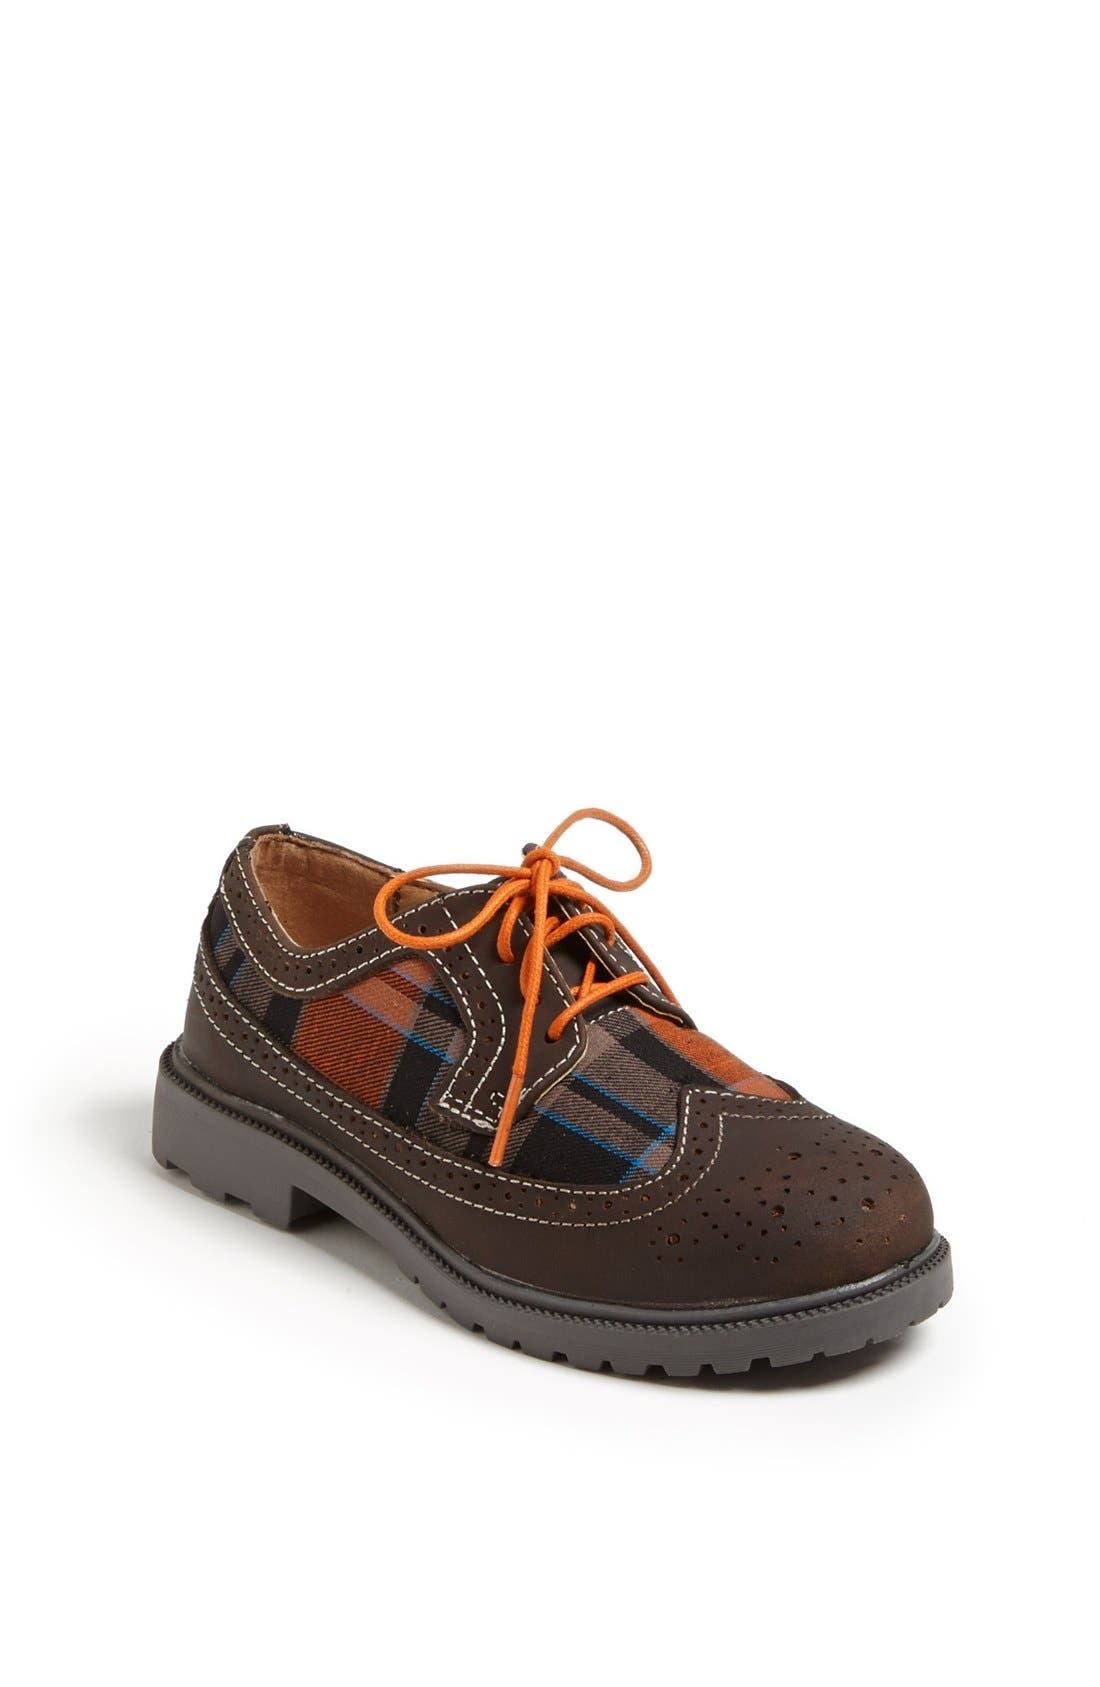 Main Image - Florsheim 'Valco Jr.' Wingtip Oxford (Toddler, Little Kid & Big Kid)